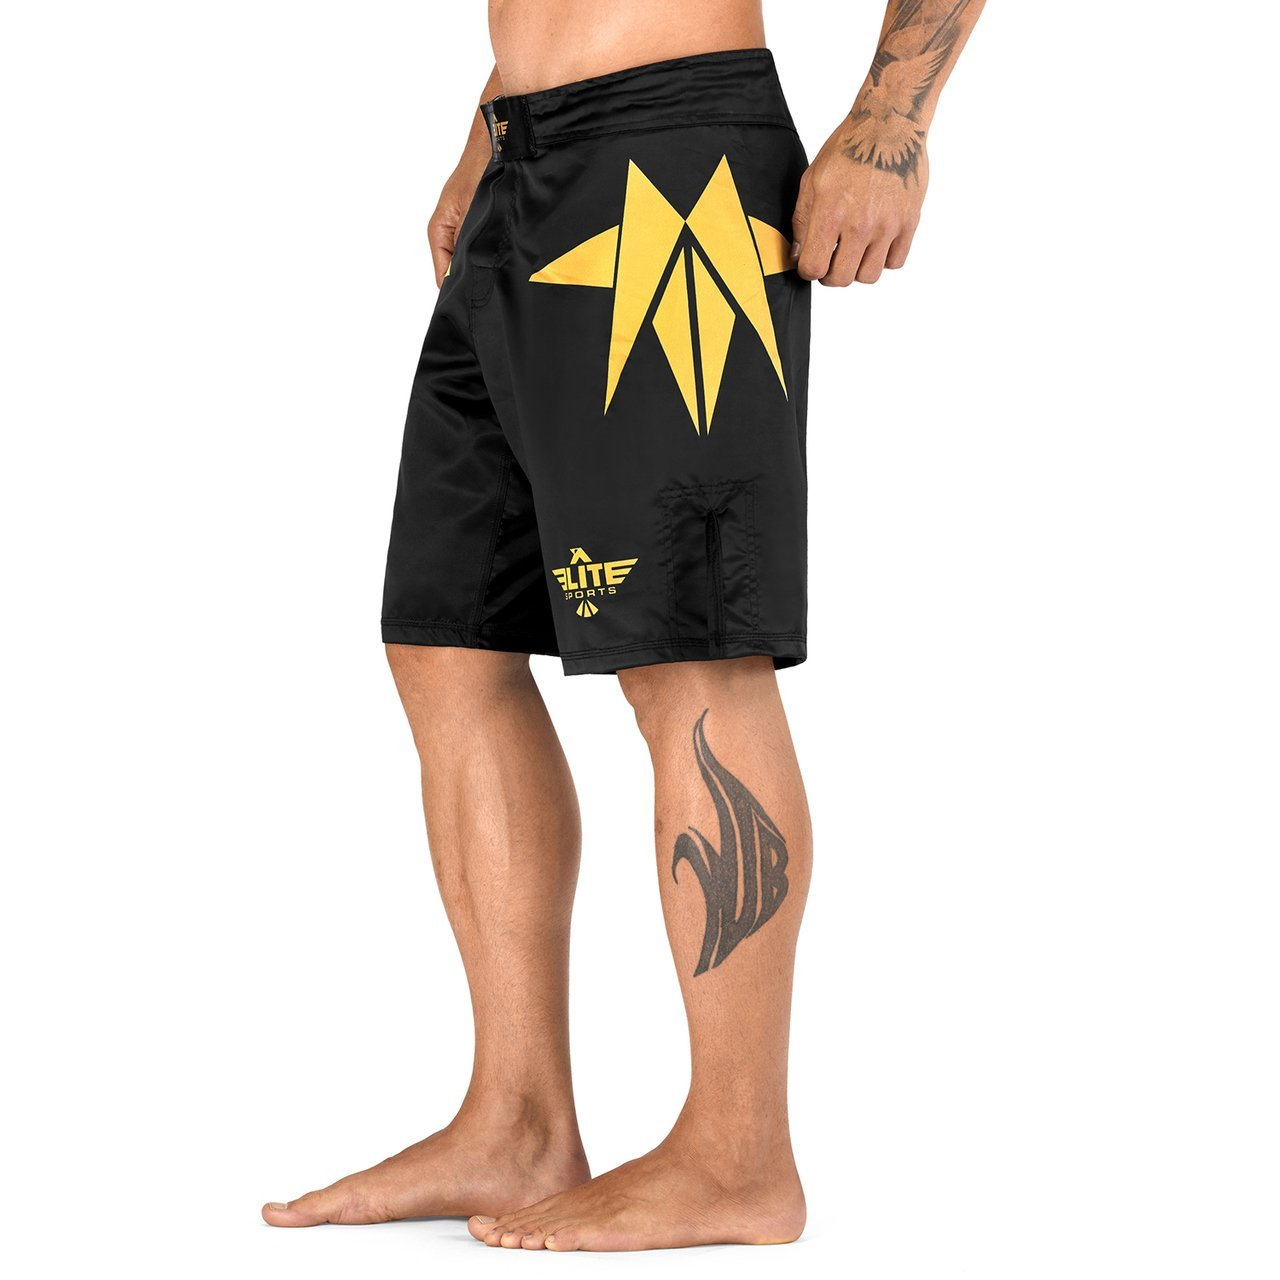 Load image into Gallery viewer, Elite Sports Star Series Sublimation Black/Gold Training Shorts